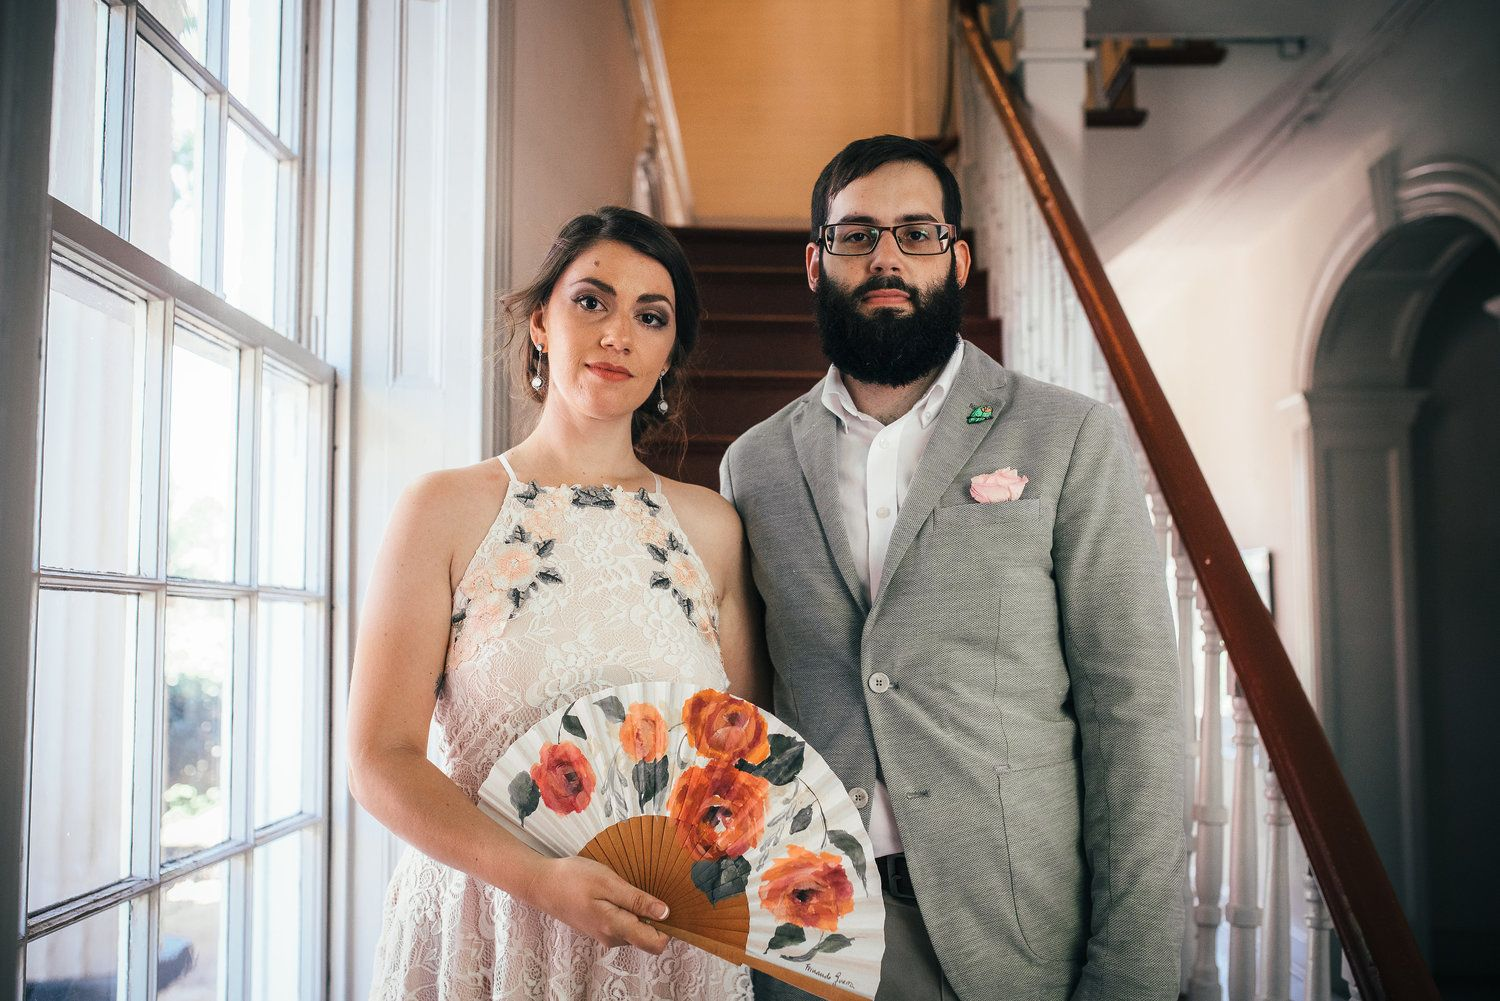 How To Get Married At The Courthouse In Nc